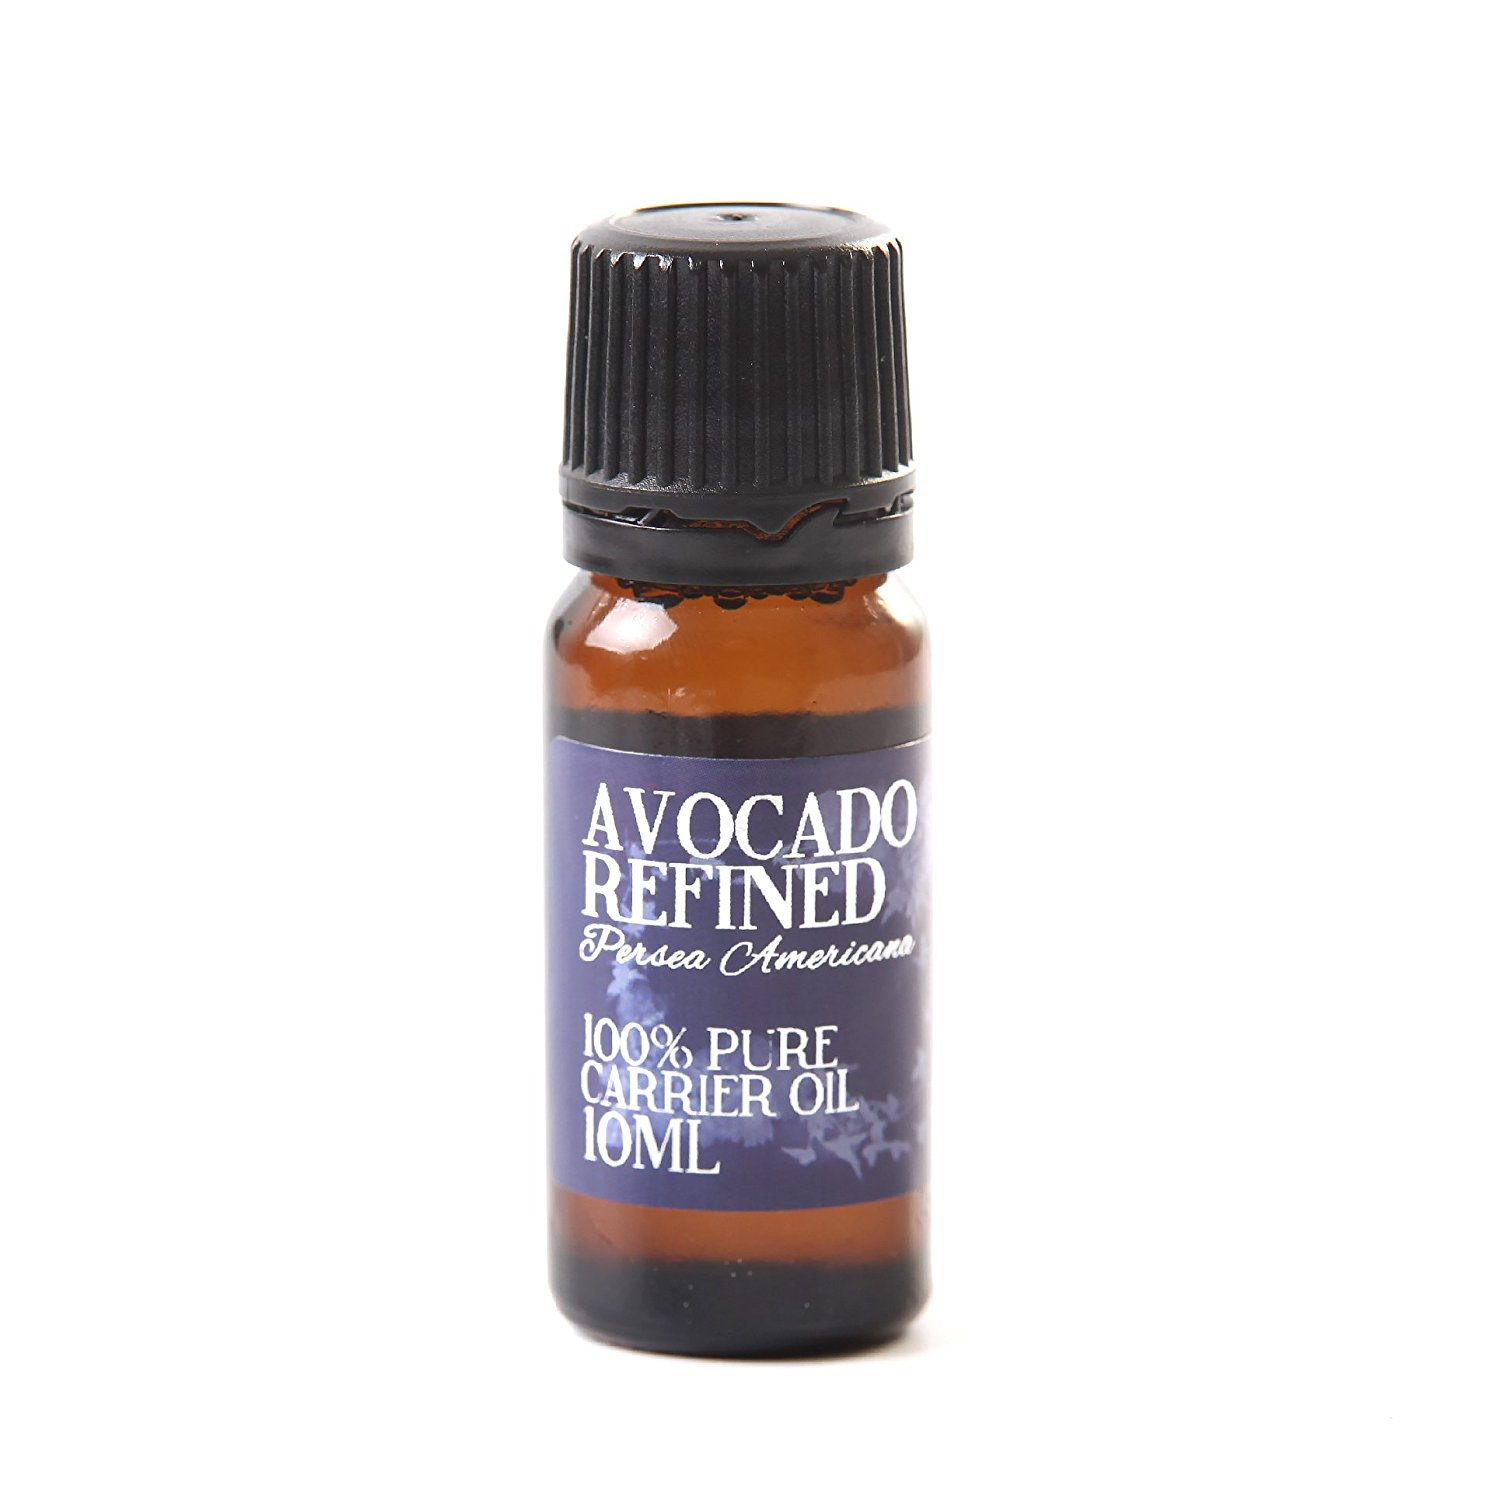 Avocado Refined Carrier Oil - 10ml - 100% Pure